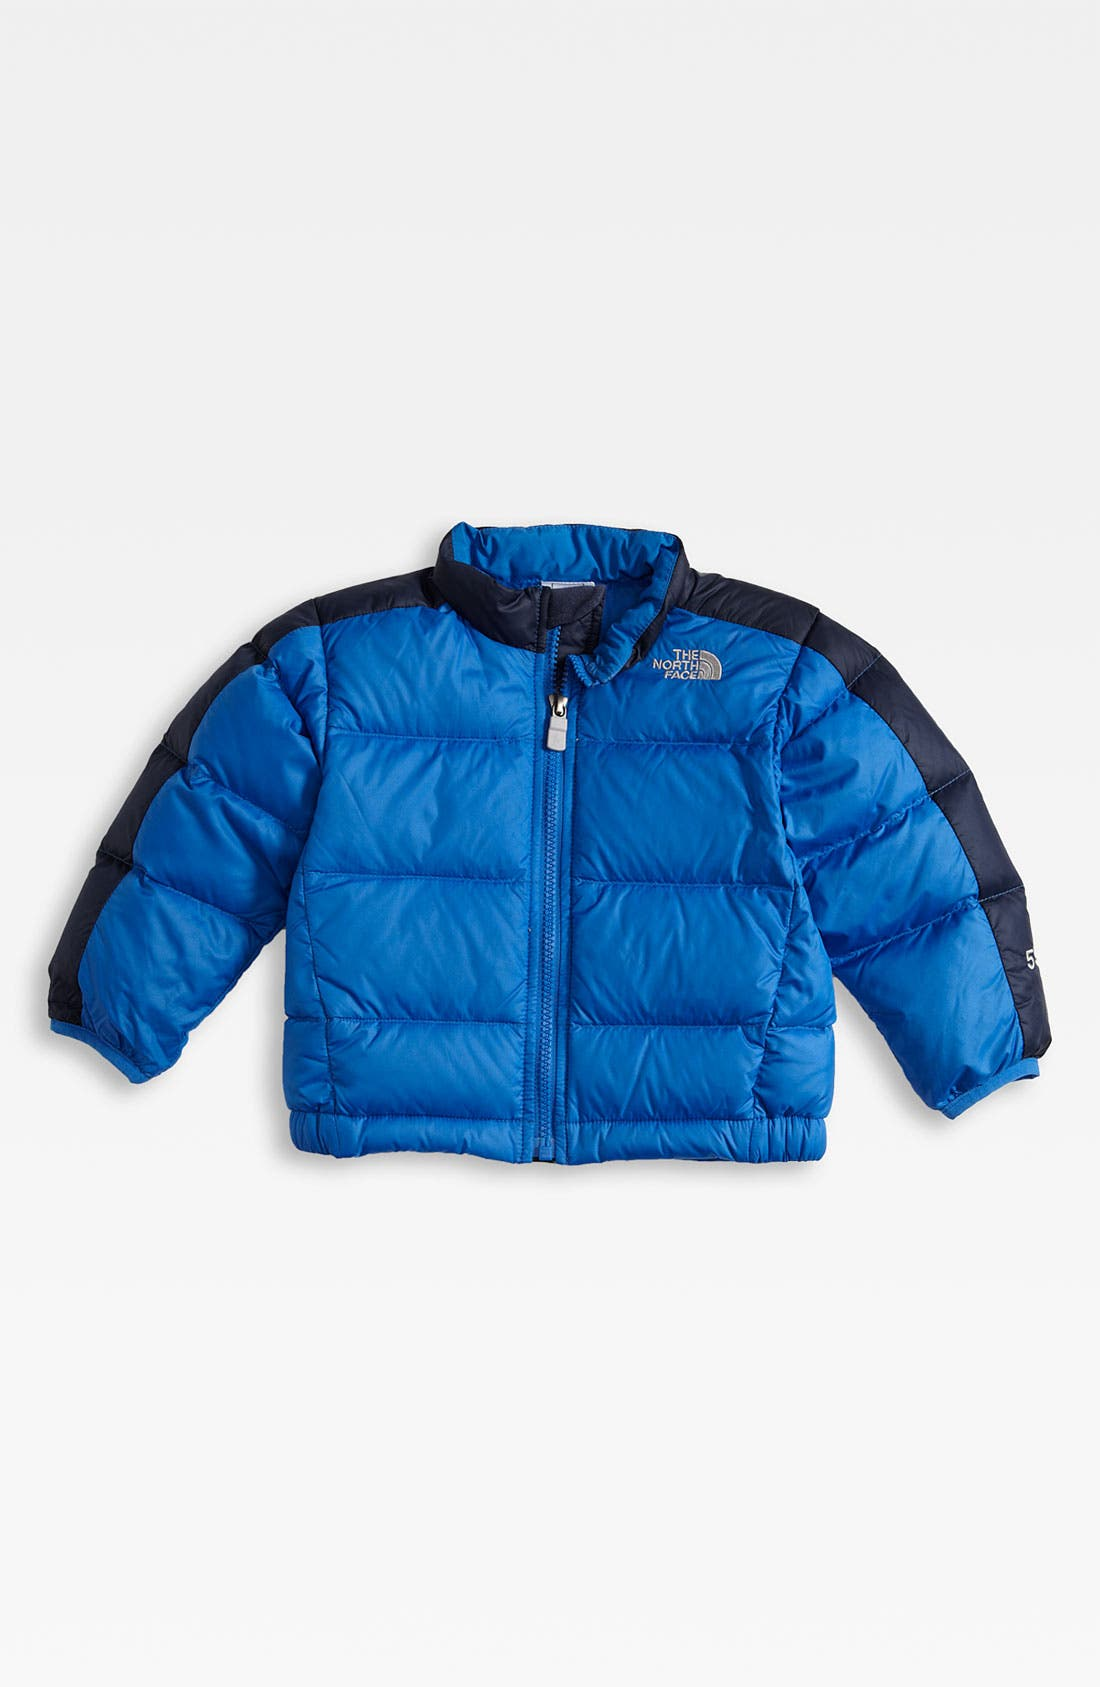 Alternate Image 1 Selected - The North Face 'Aconcagua' Jacket (Infant) (Nordstrom Exclusive)